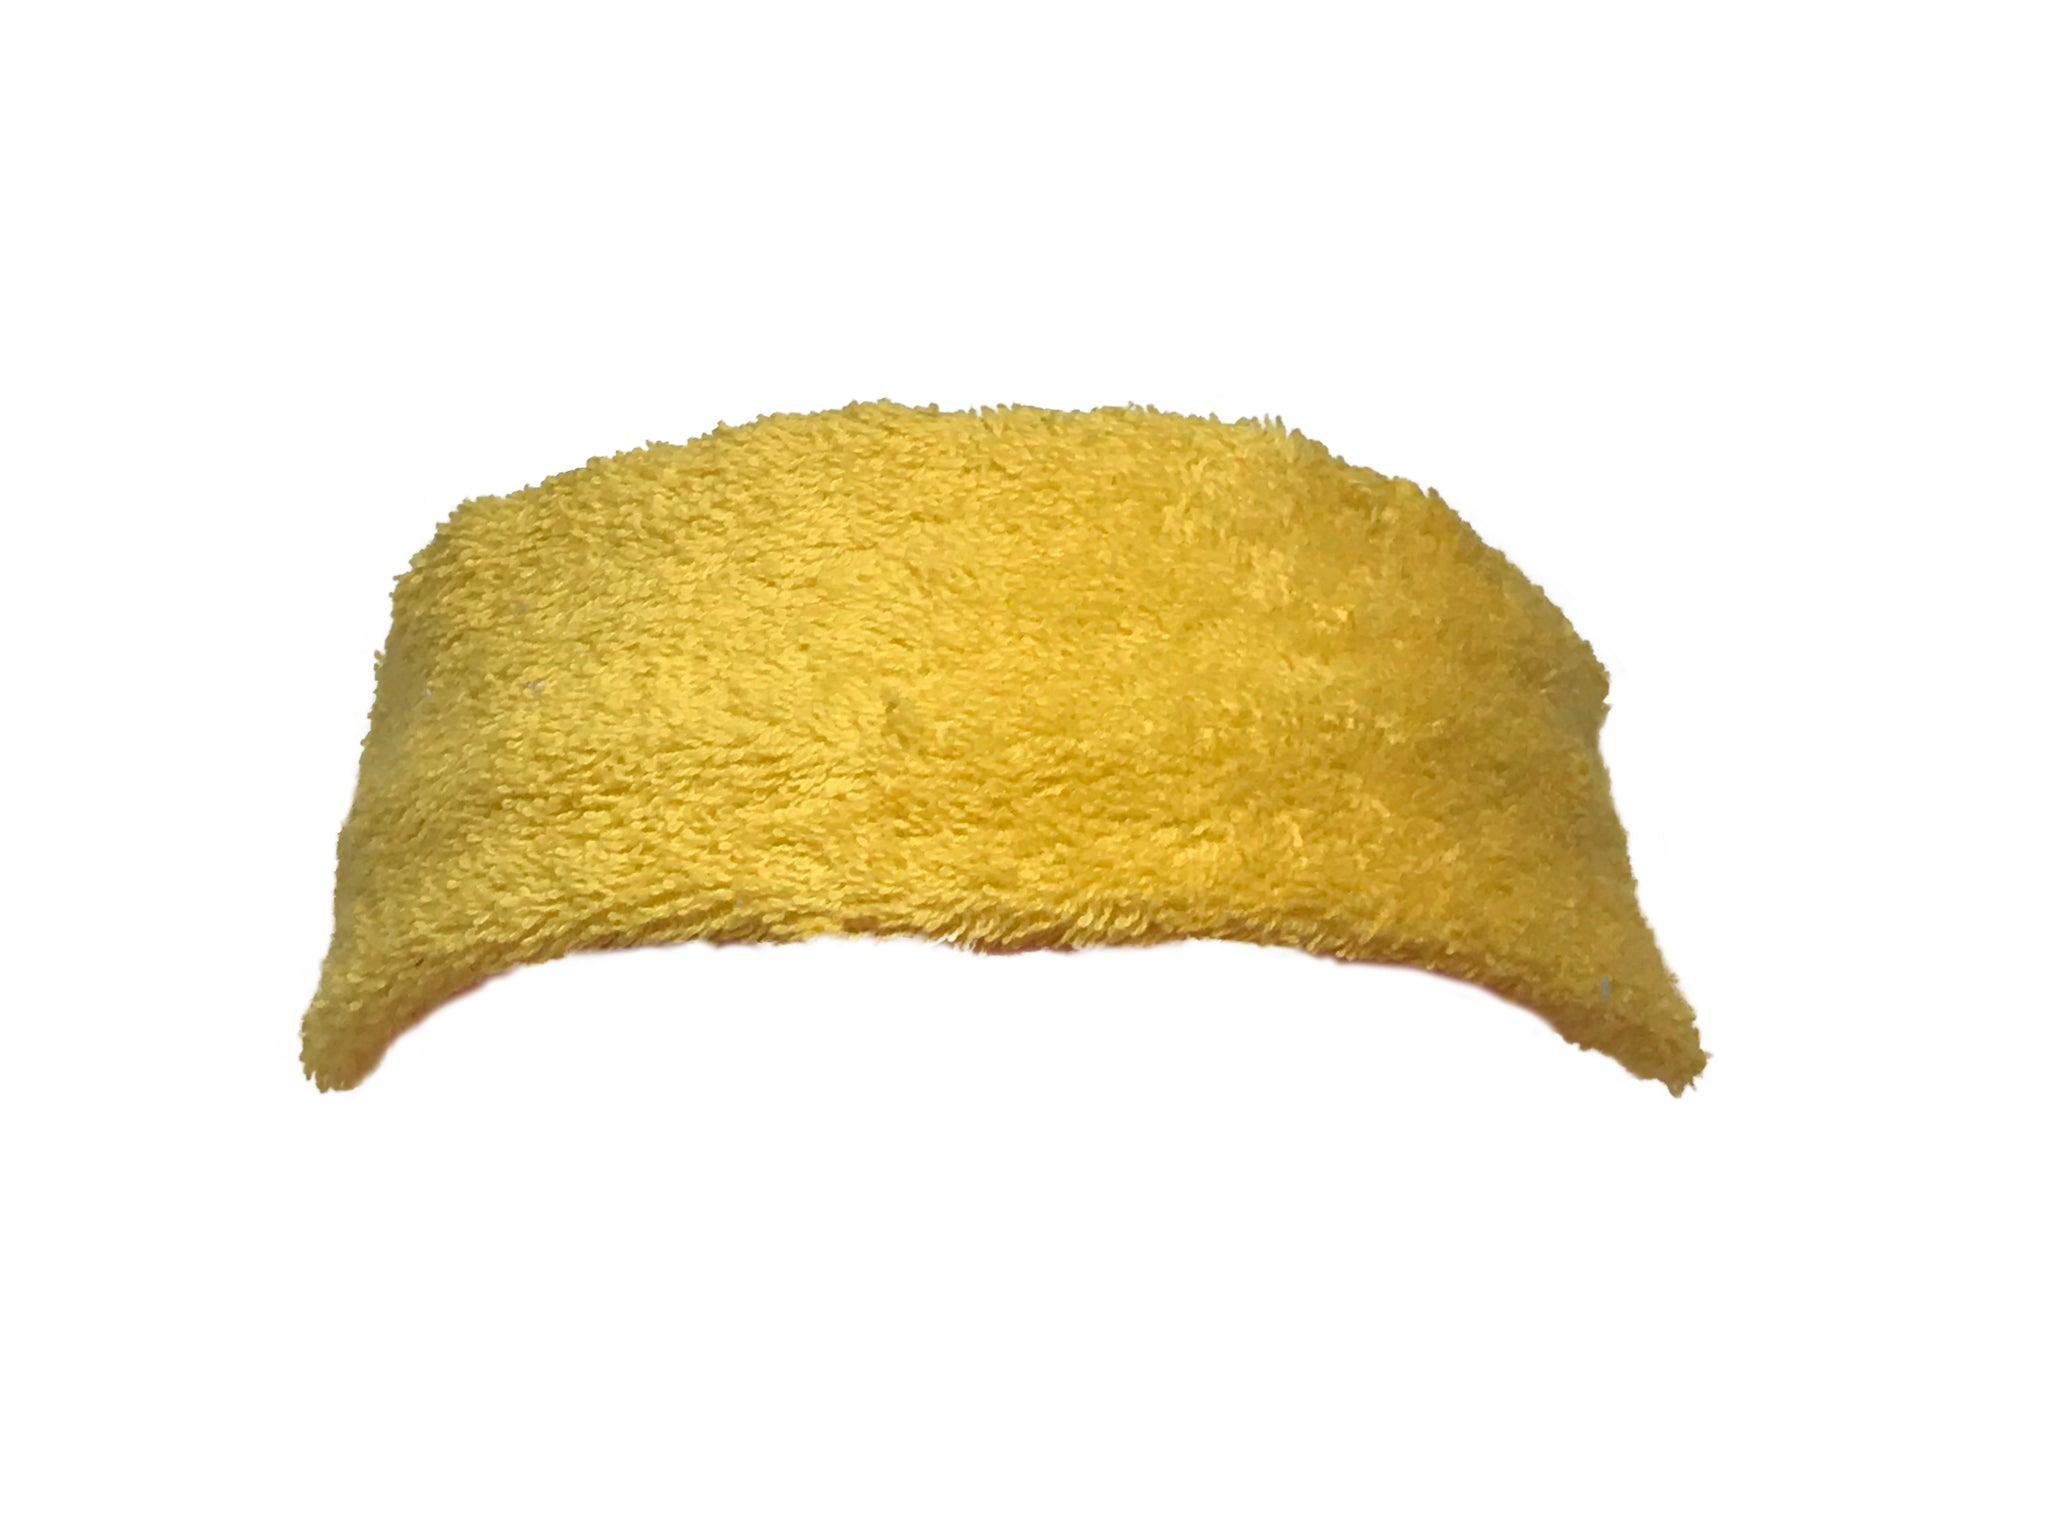 copy Wilt Chamberlain headband